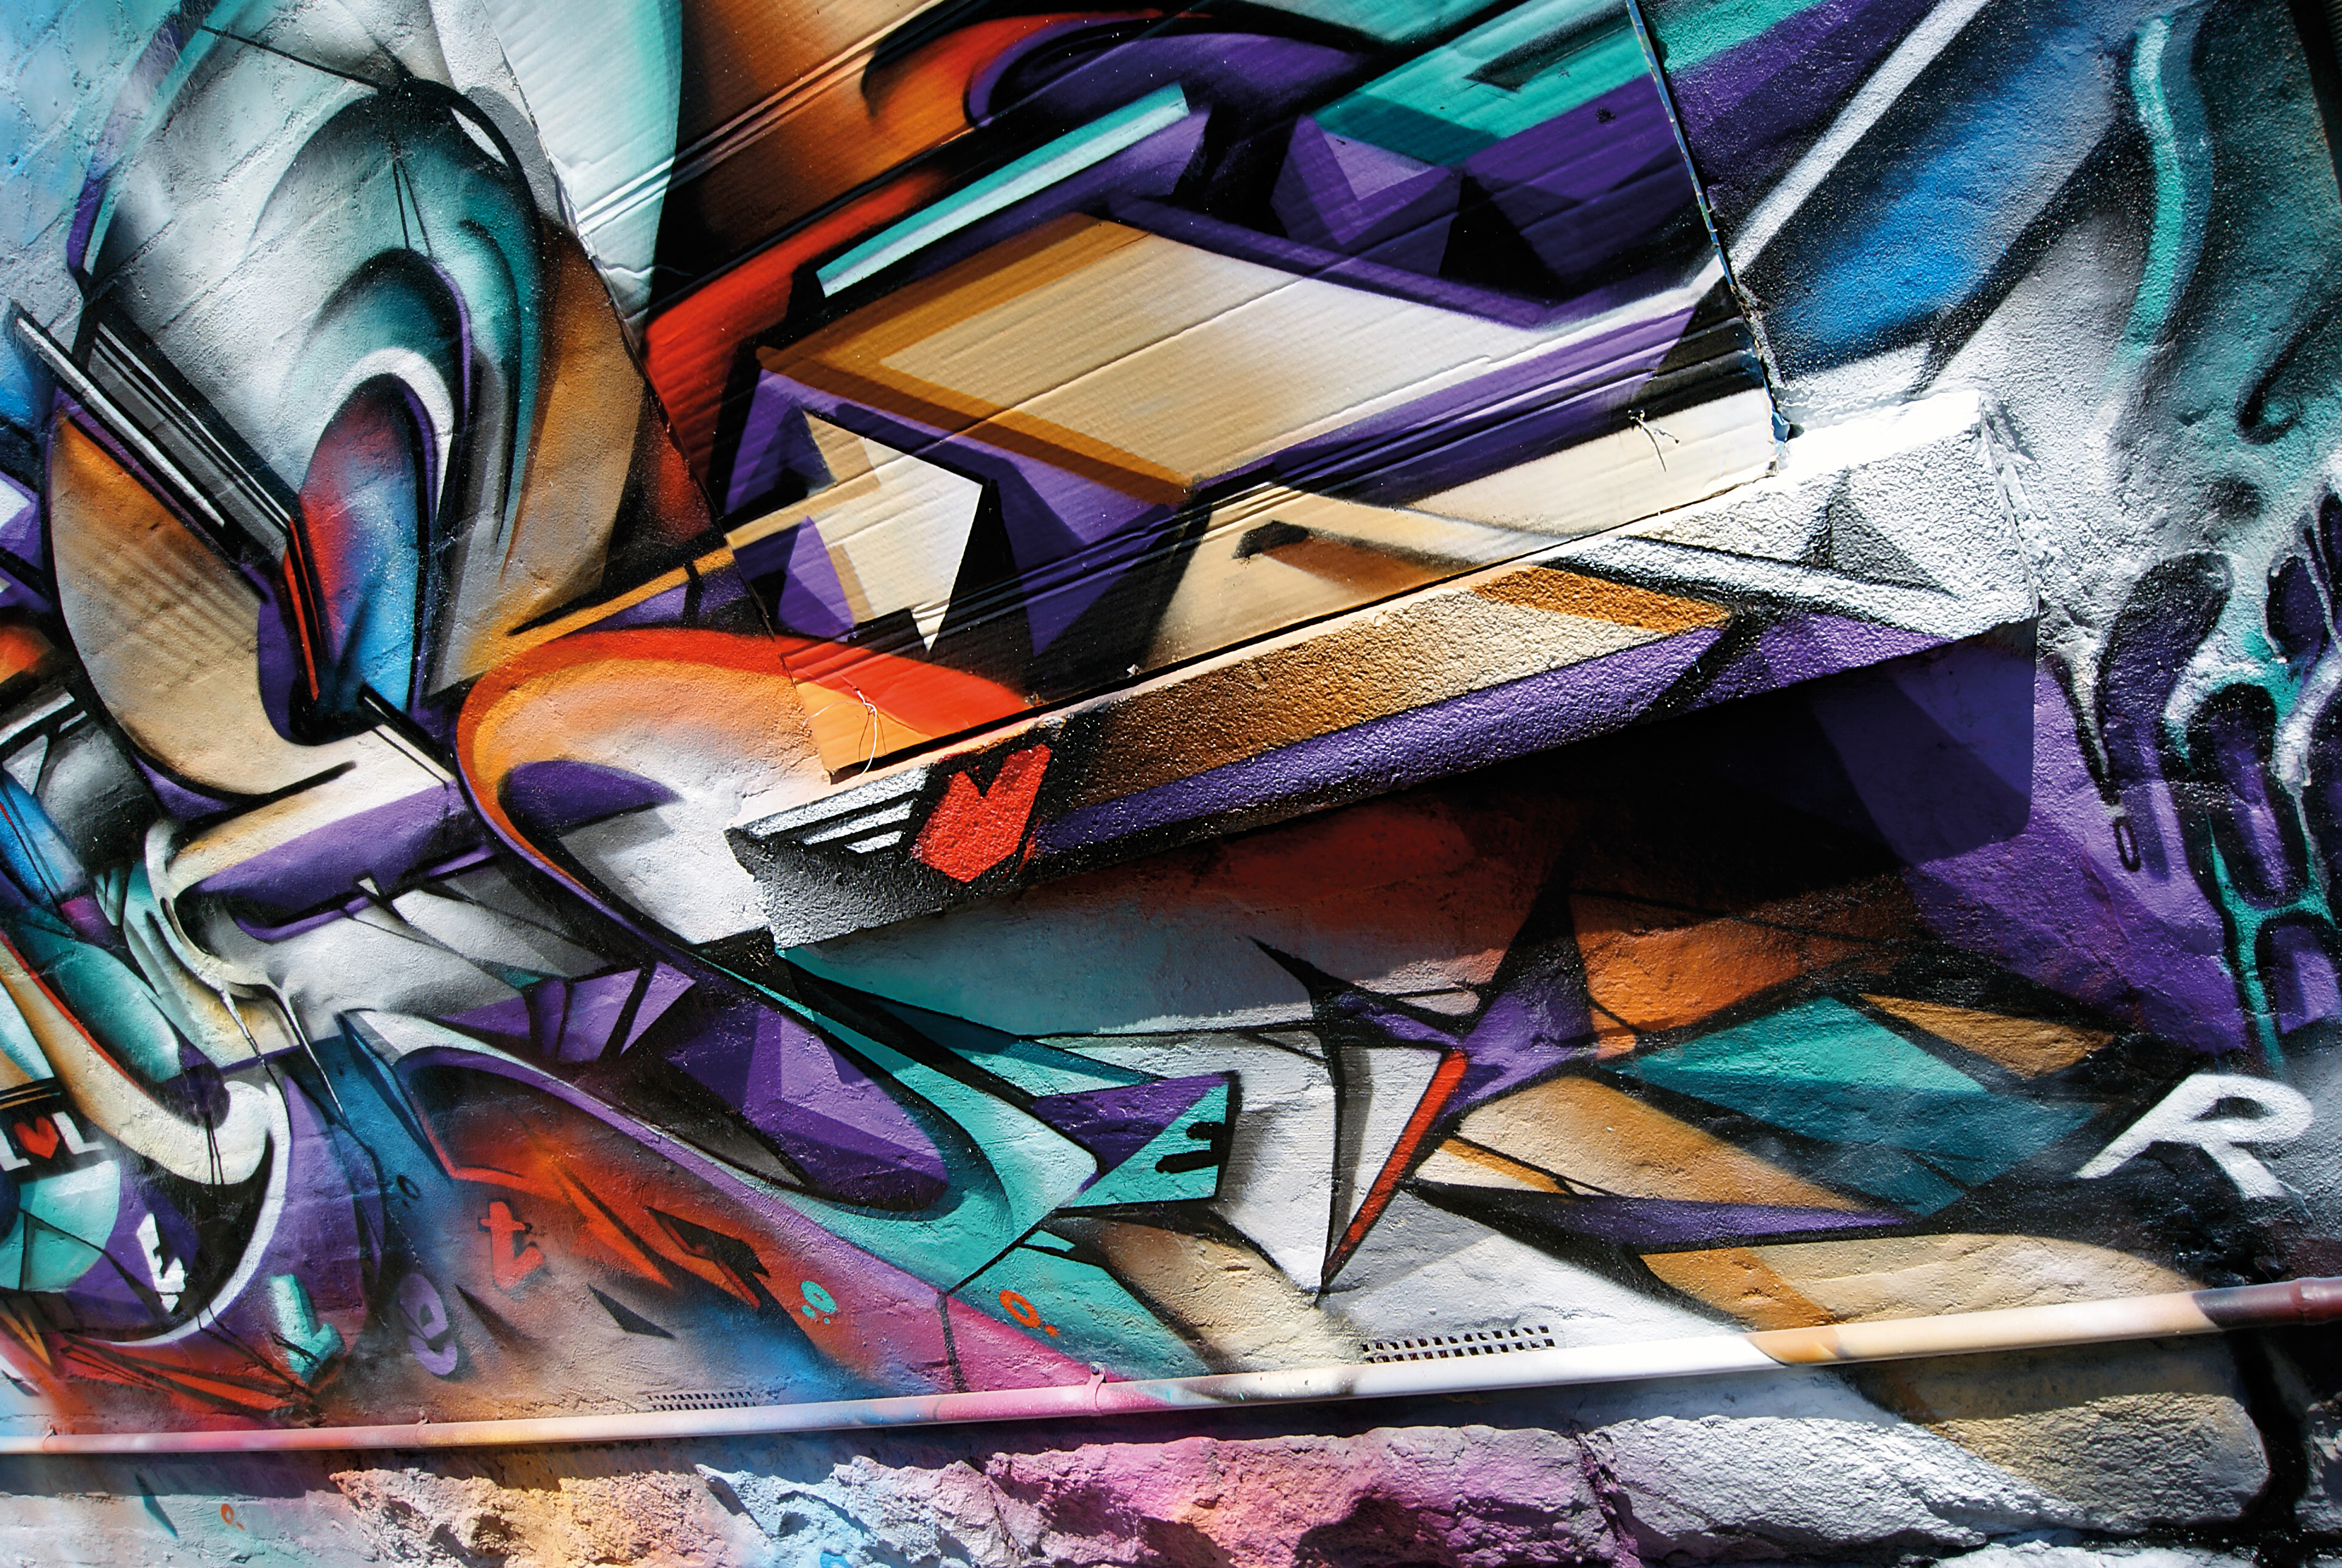 A work by Does - Melbourne australia mural detail